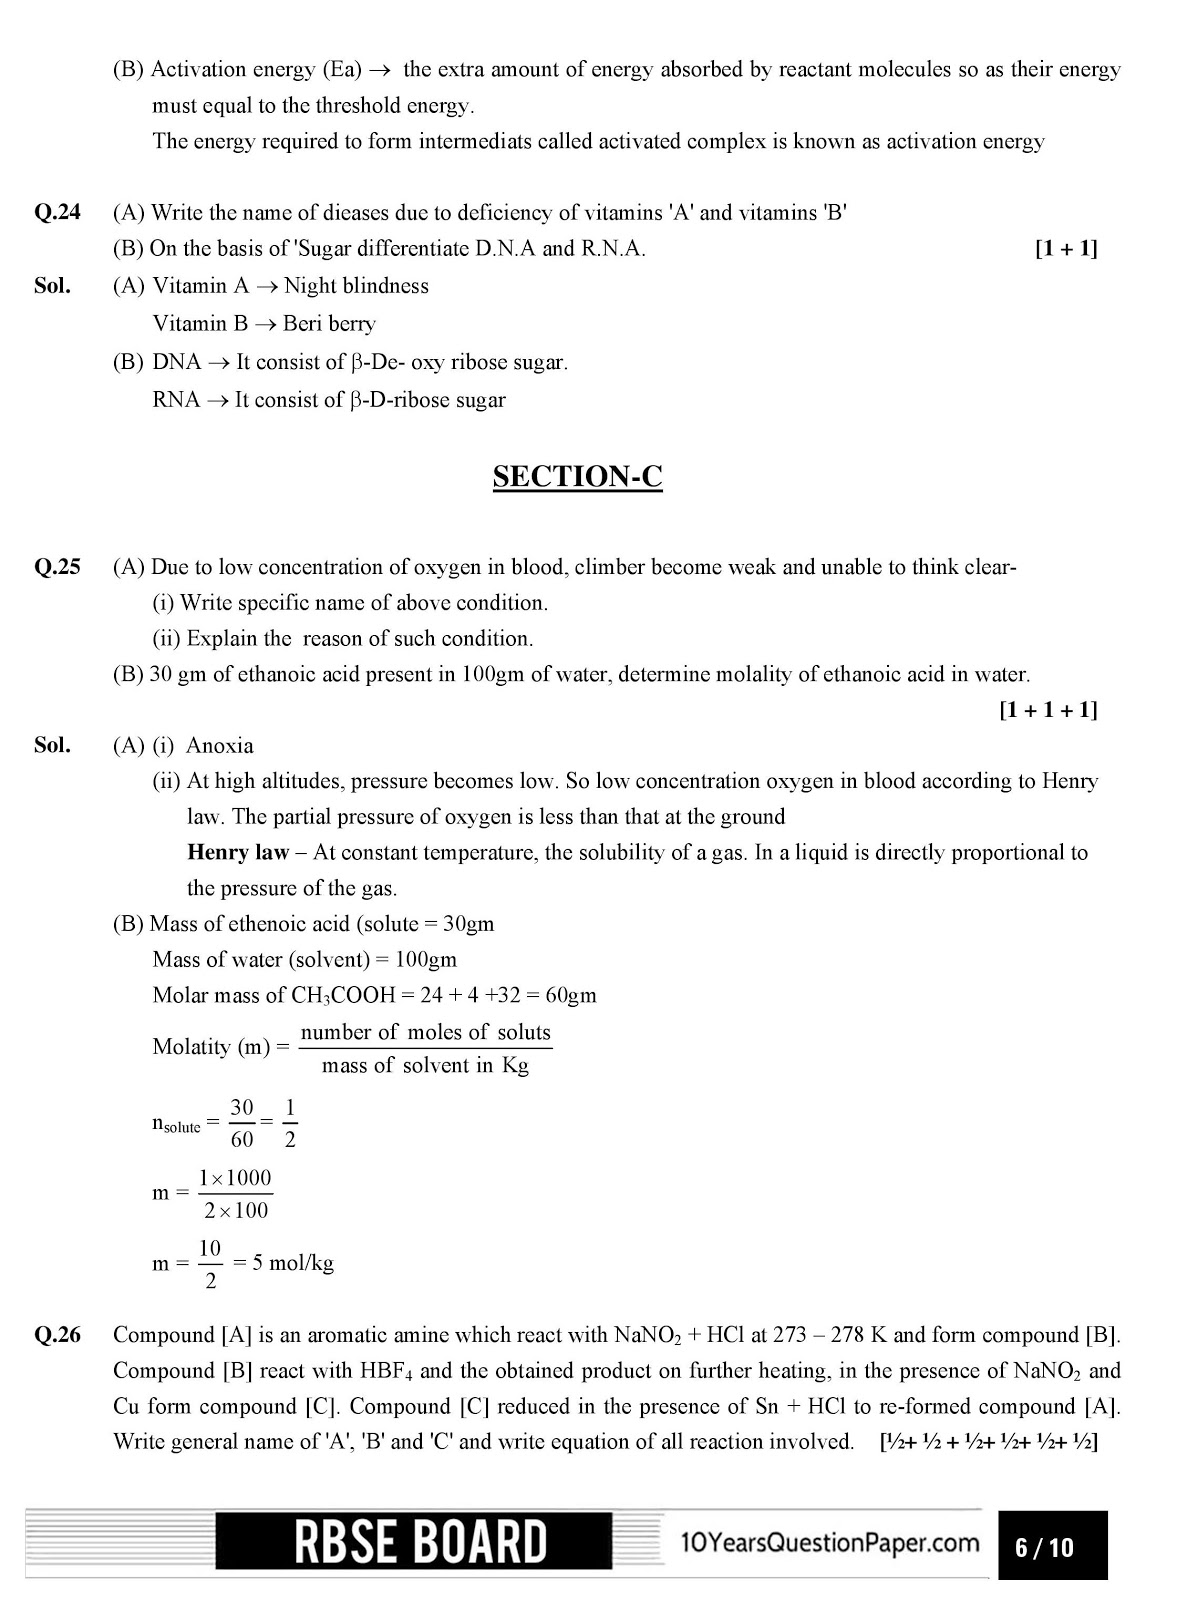 RBSE class 12th 2017 Chemistry question paper with solution